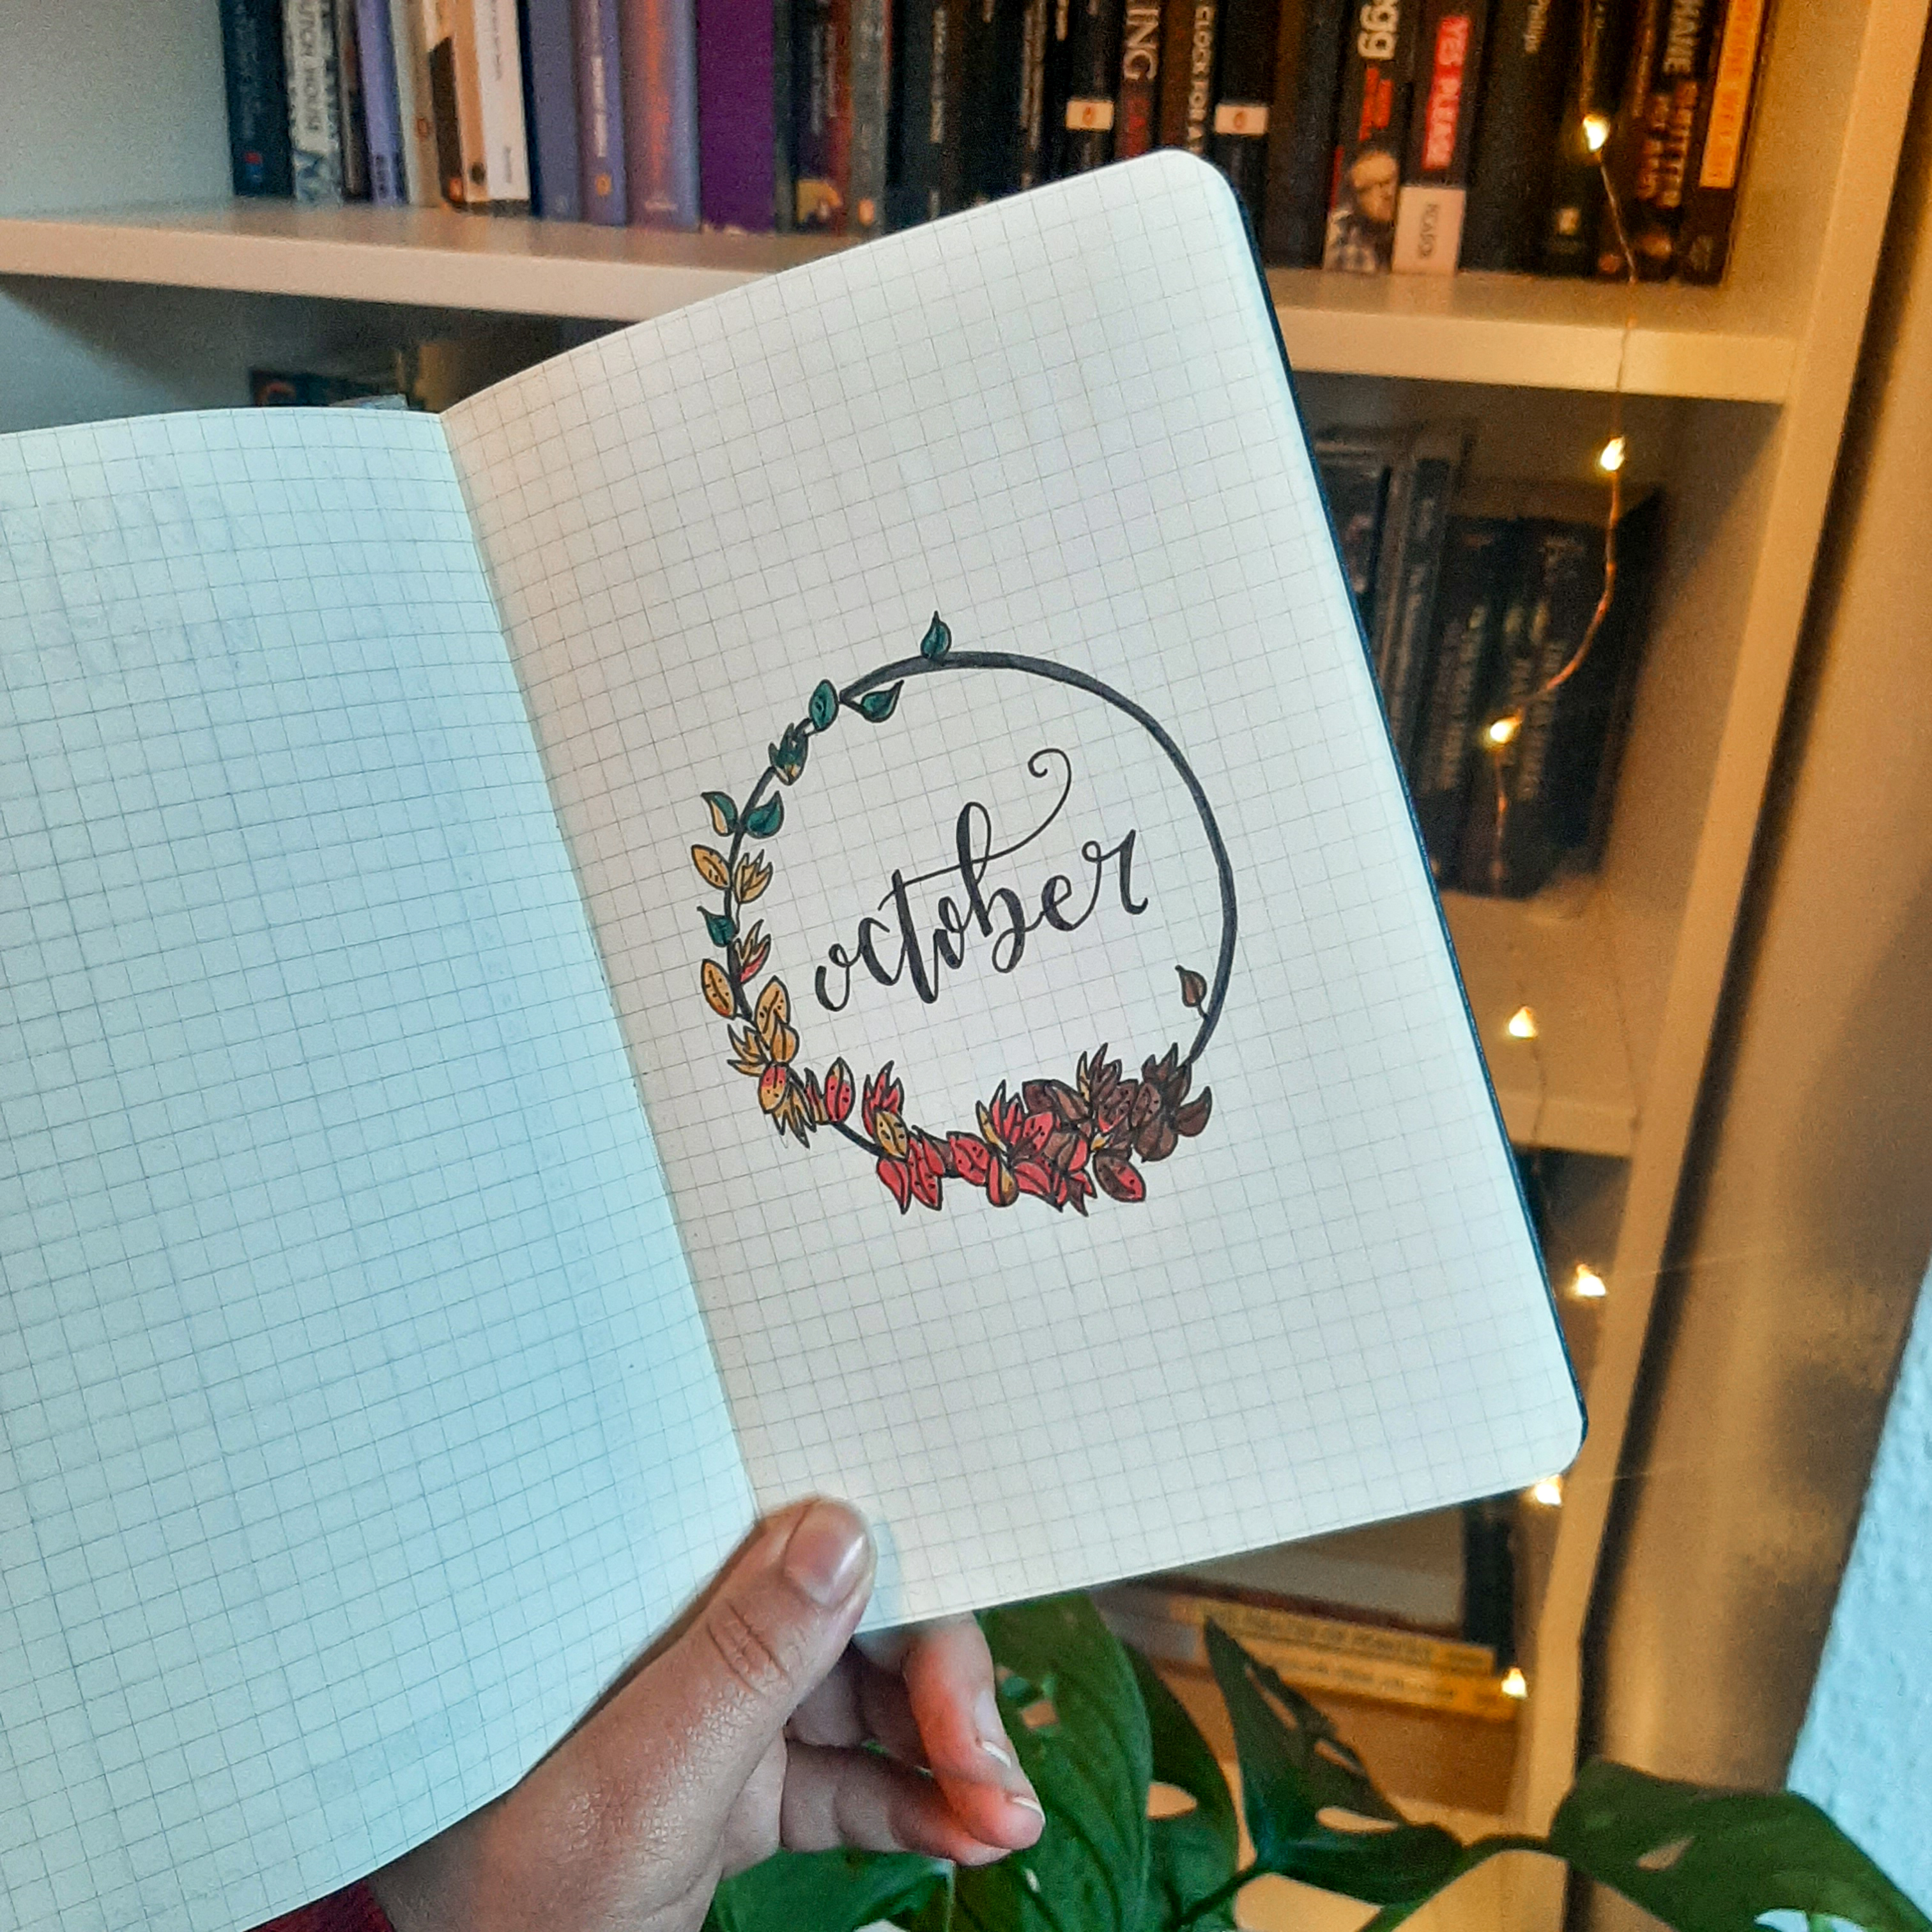 A picture of Rosie's bujo for October. The page has a black circle surrounded by leaves, with cursive 'October' written in the middle. It is held up in front of a bookcase, fairylights, and a monstera